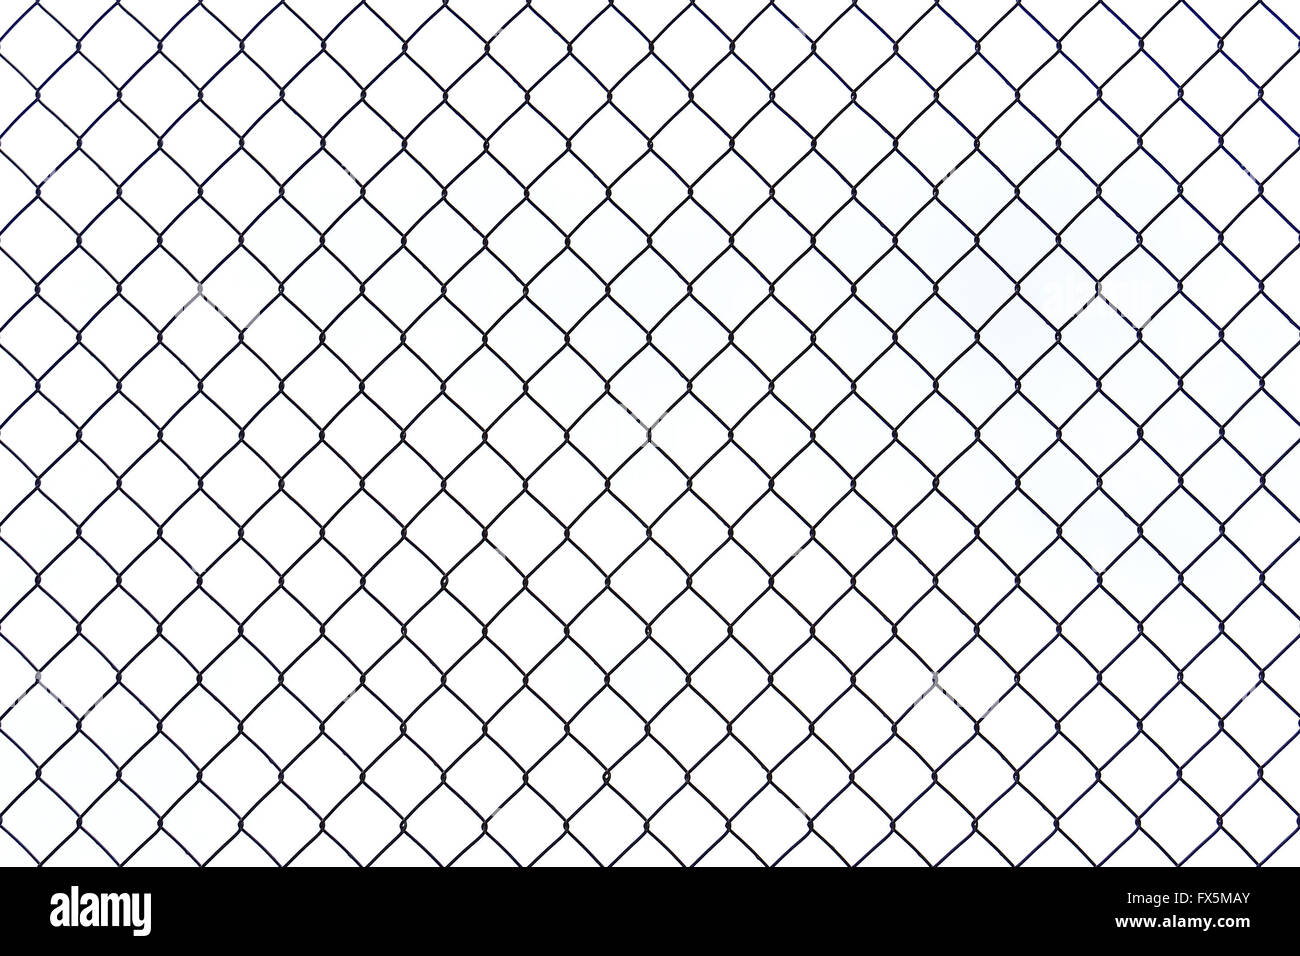 Braid wire fence texture on a white background - Stock Image